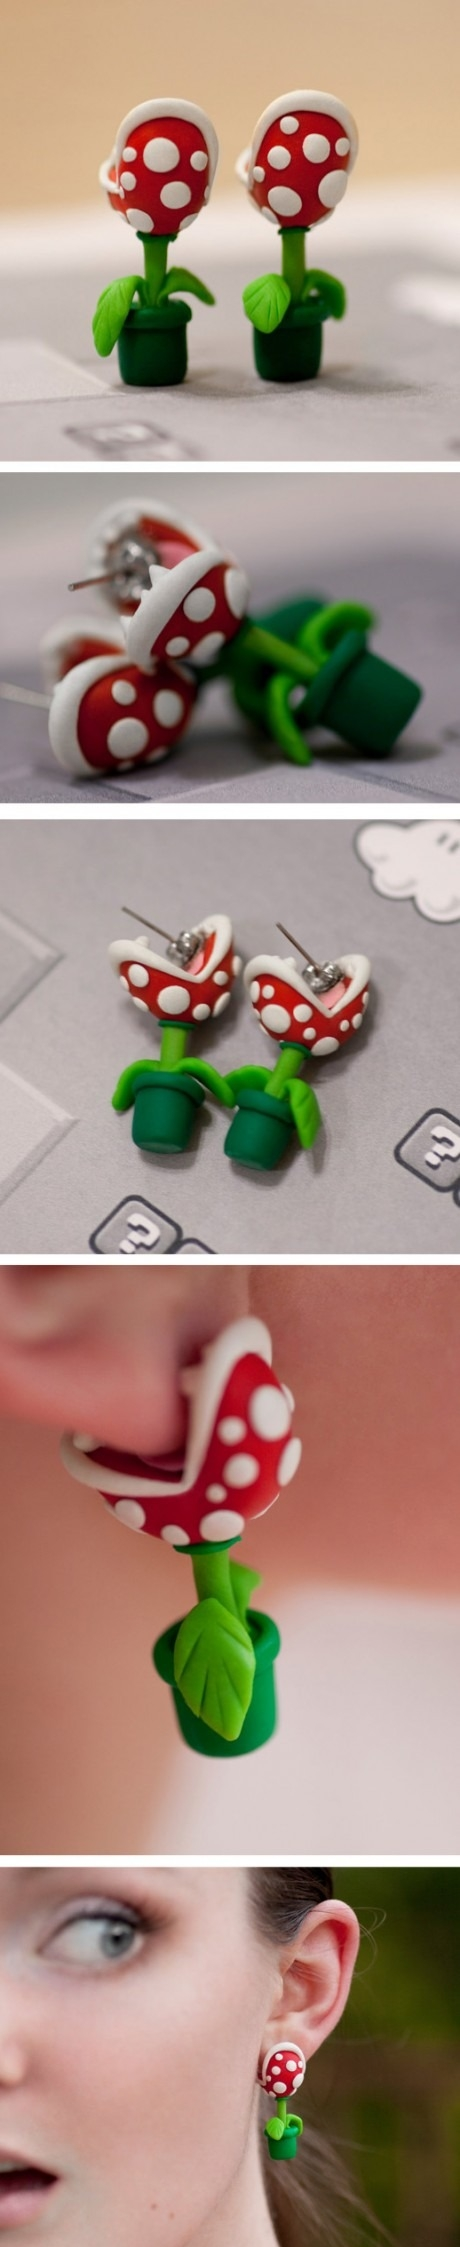 Awesome Super Mario Earrings